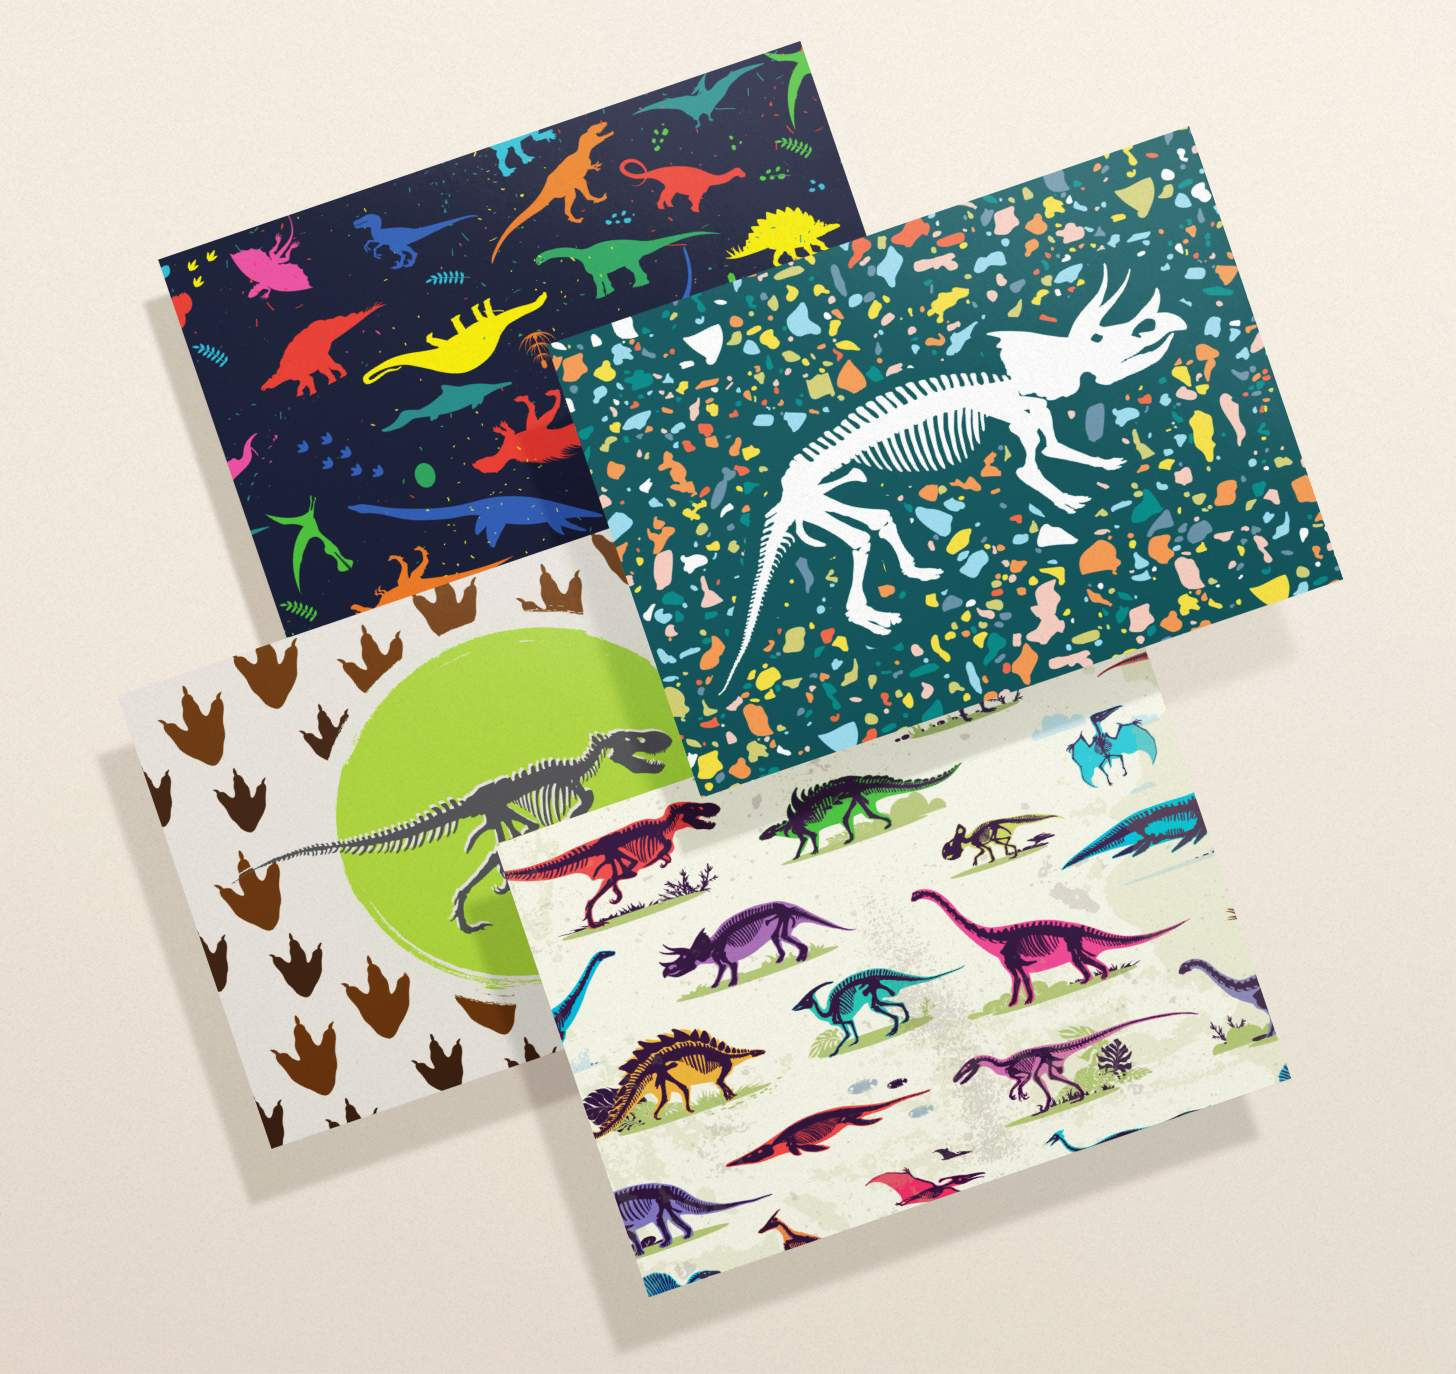 Four overlapping cards featuring dinosaur bones, neon dinosaurs, multicolor dinosaurs, and footprints designs